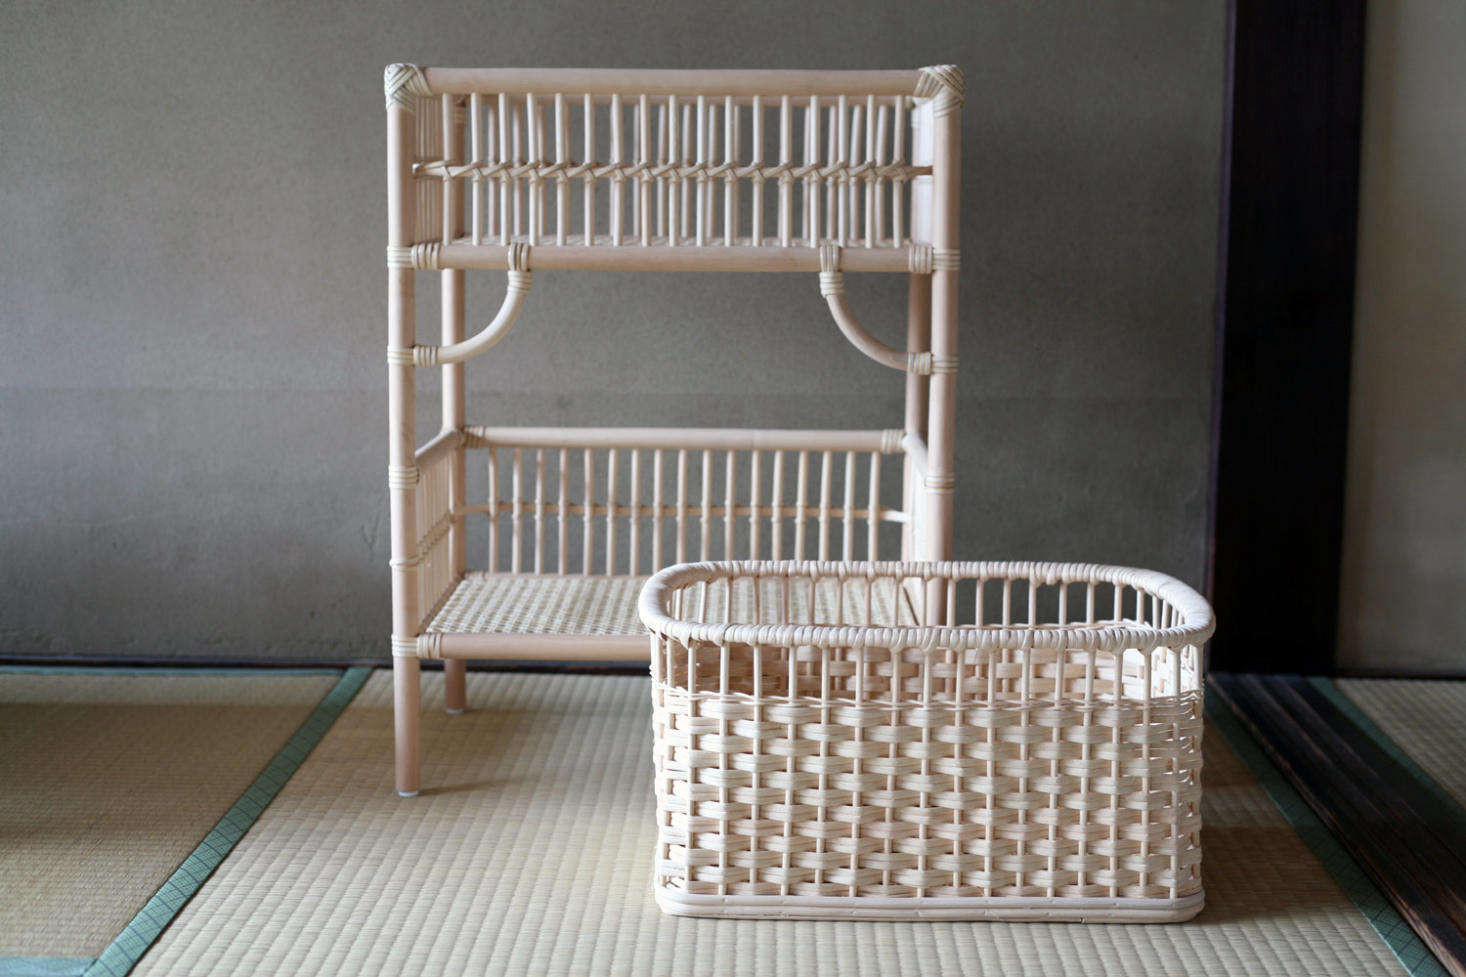 From Tsuruya Shoten, a Japanese workshop specializing in rattan designs, the Rattan Laundry Rack has a top compartment intended as a &#8